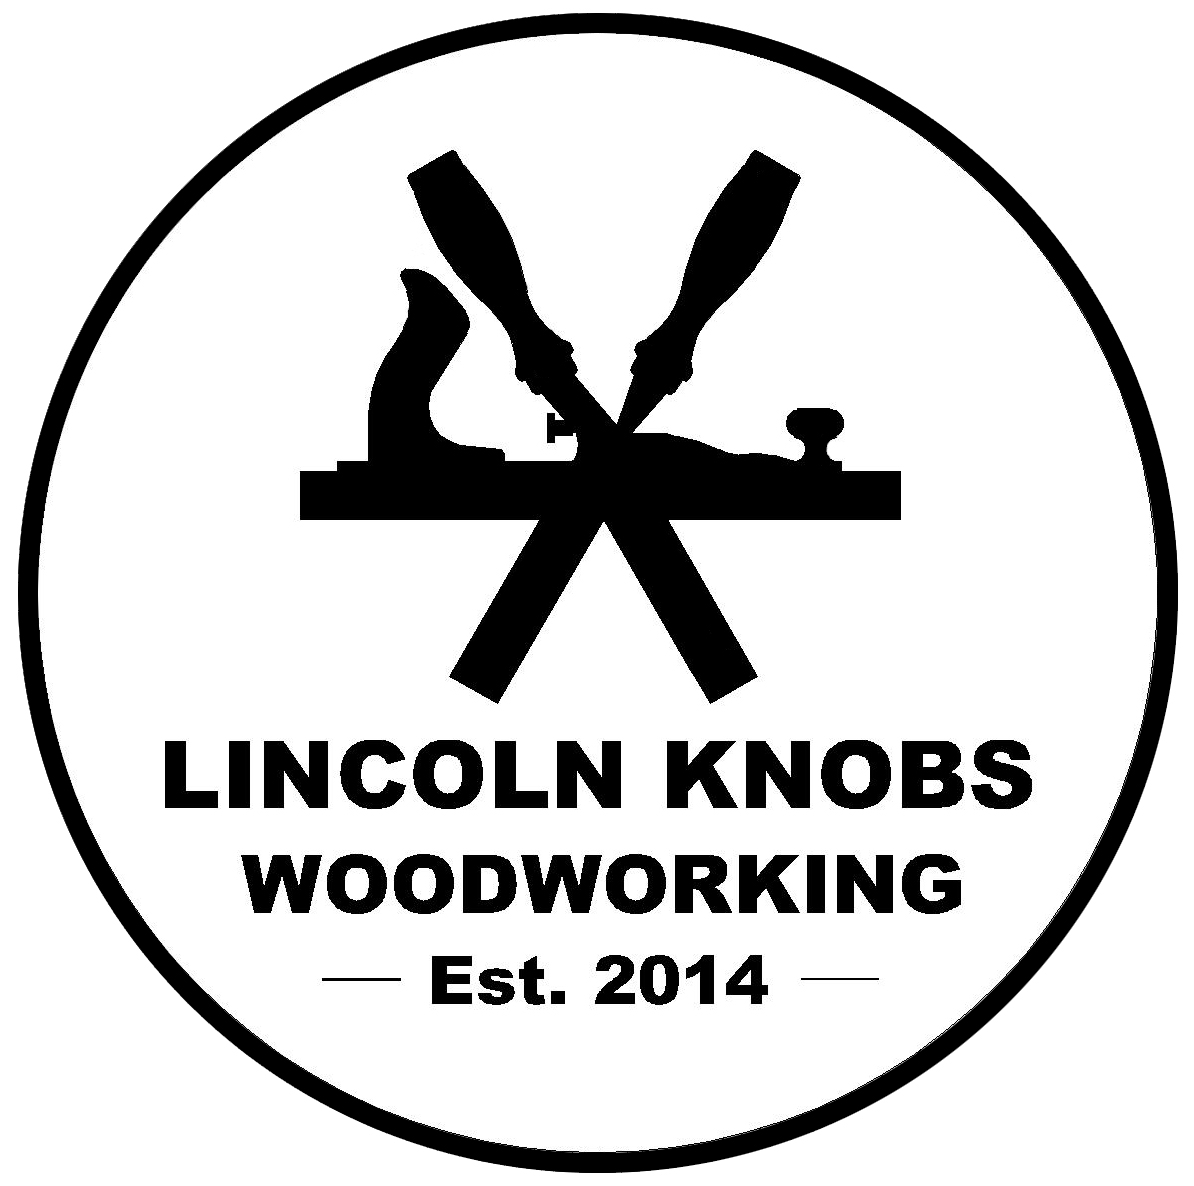 Lincoln Knobs Woodworking